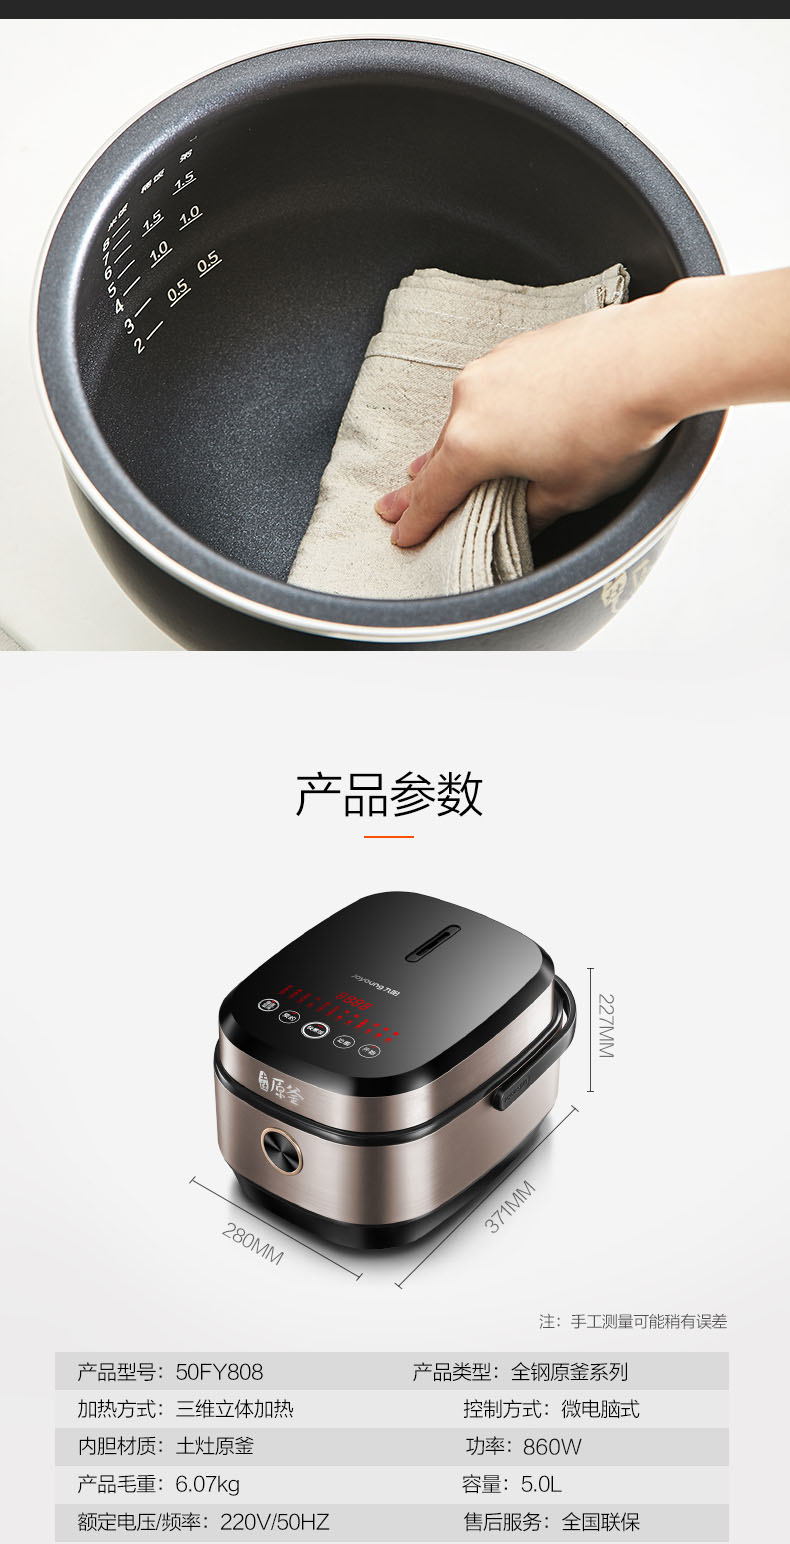 Rice Cooker 5L Home Smart 1 Large Capacity 3 Steamed Rice Cooking Rice 6 Authentic Rice Cooker 50FY808 11